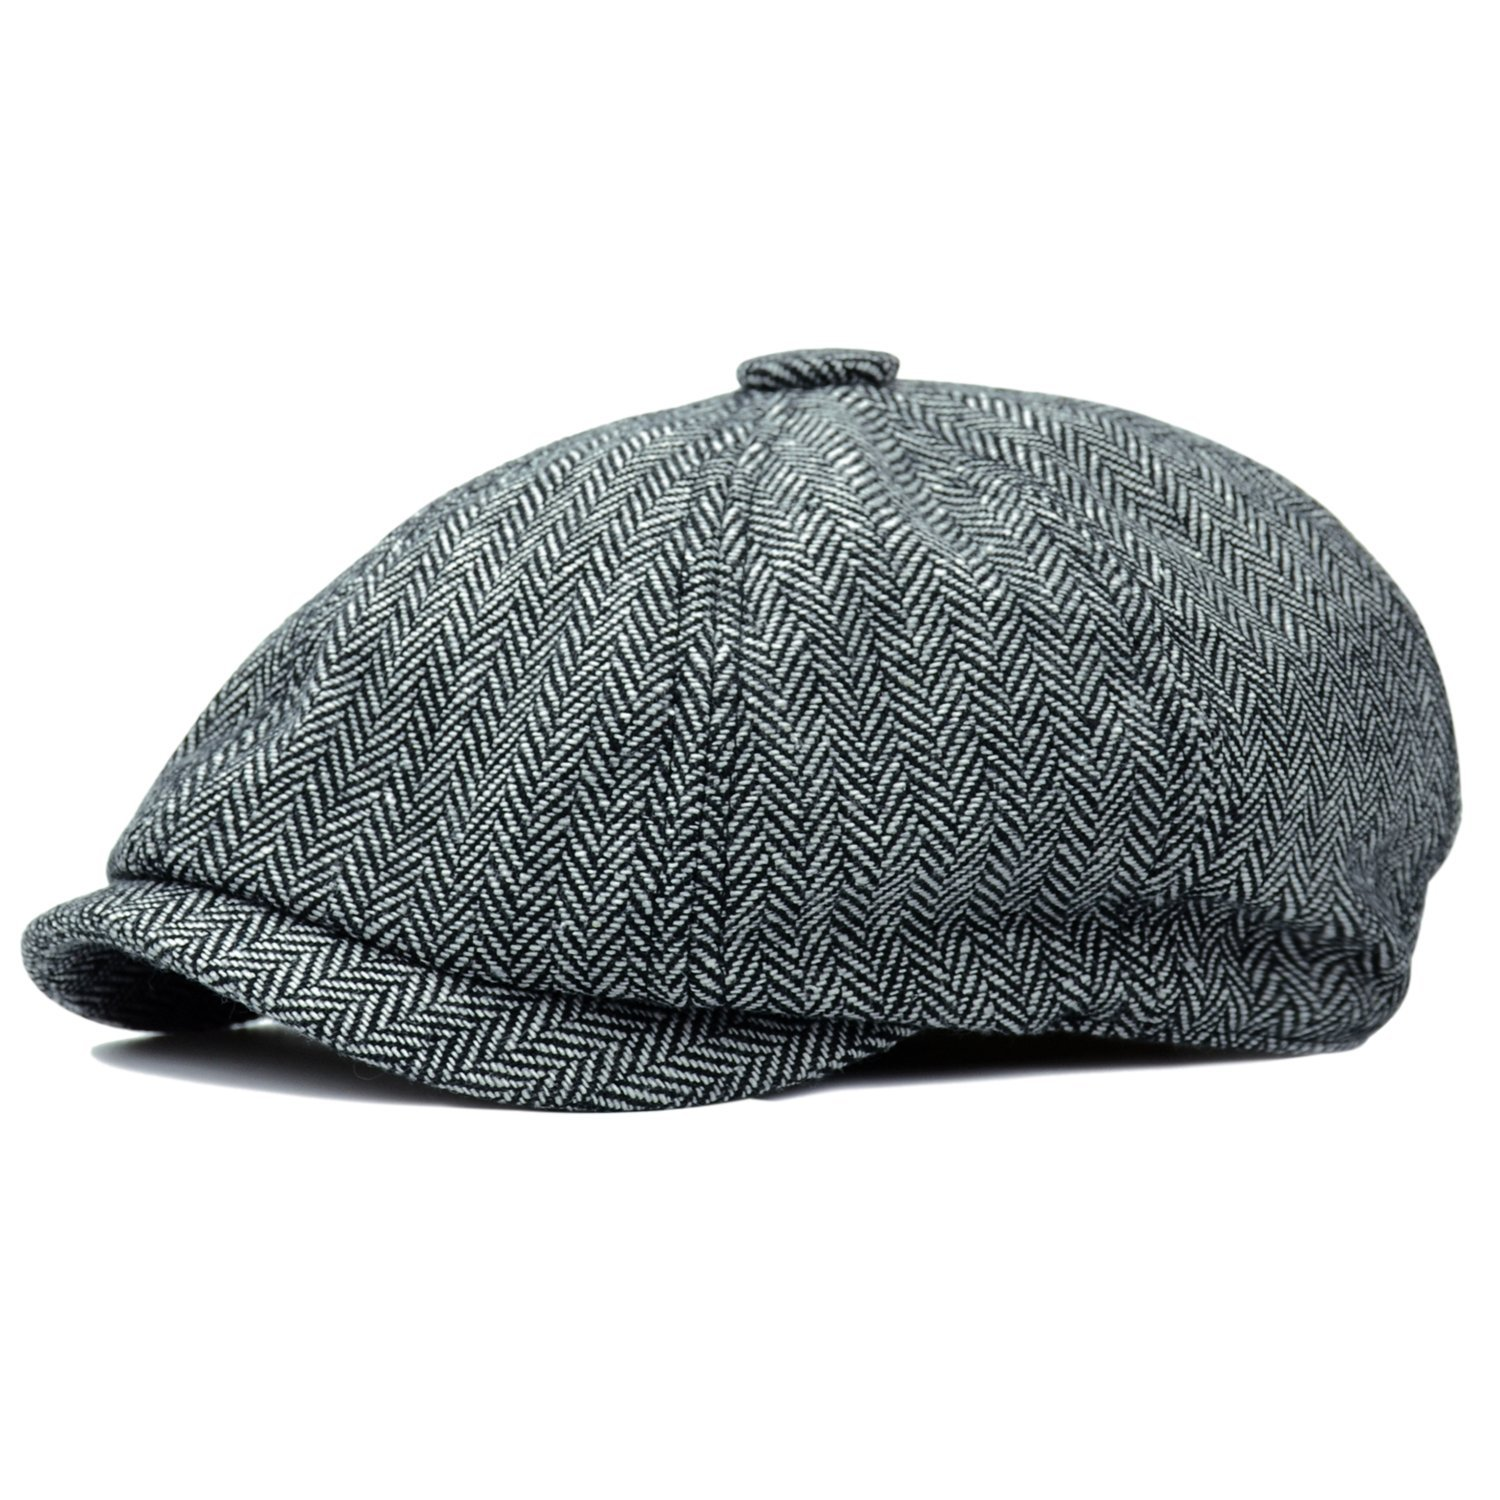 b1dd72fee Cheap Herringbone Tweed Fabric 5 Panels Hat Caps, find Herringbone ...